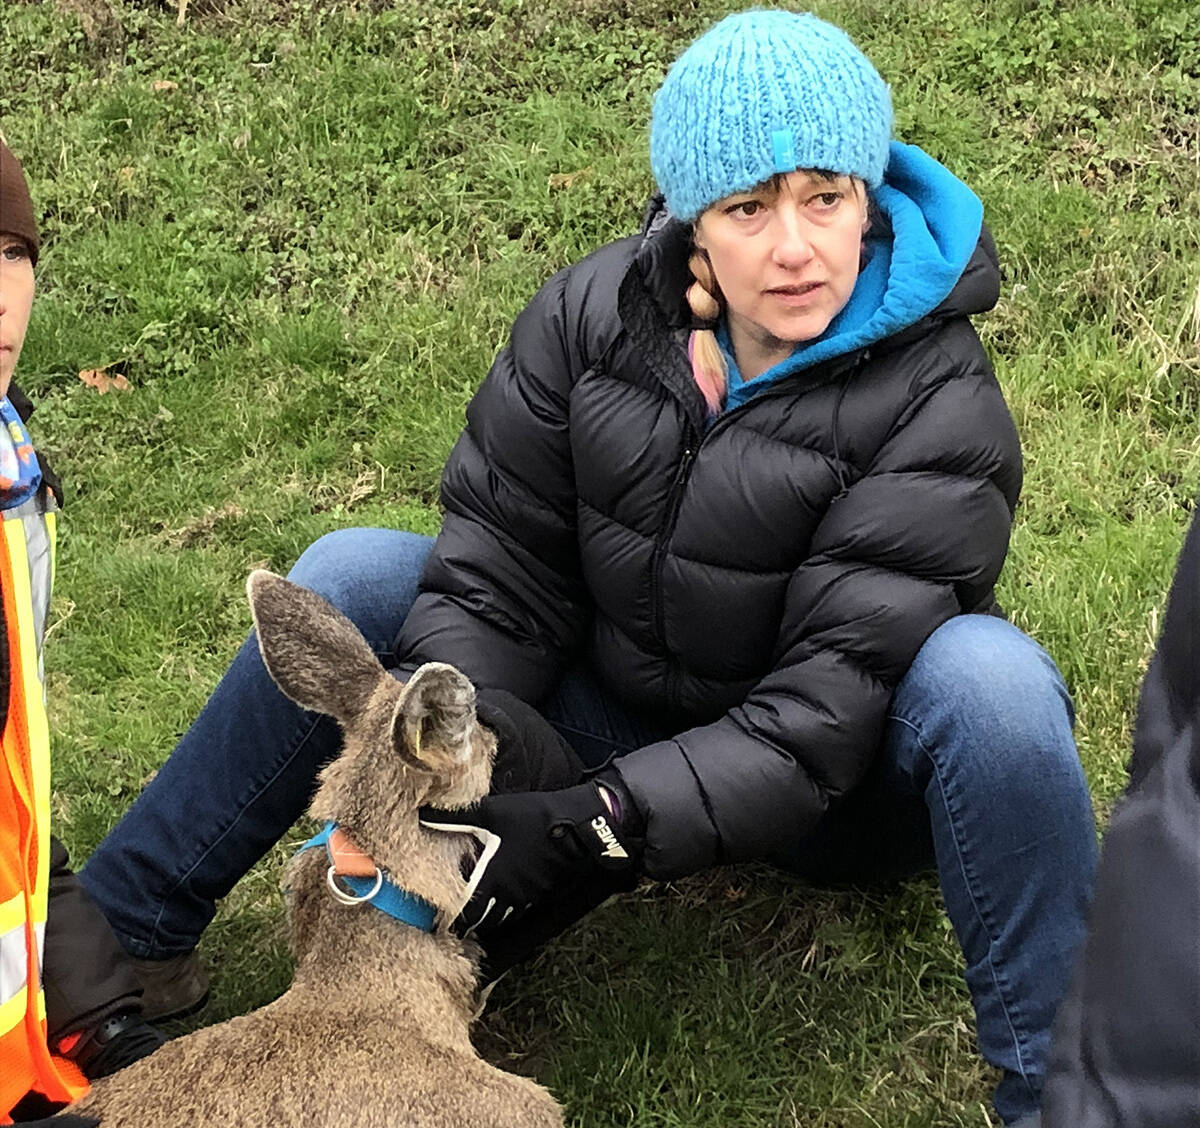 Wildlife biologist Alina Fisher, a PHD student in Environmental Studies at UVic works with deer in Oak Bay through the Urban Wildlife Stewardship Society. (Courtesy Alina Fisher)